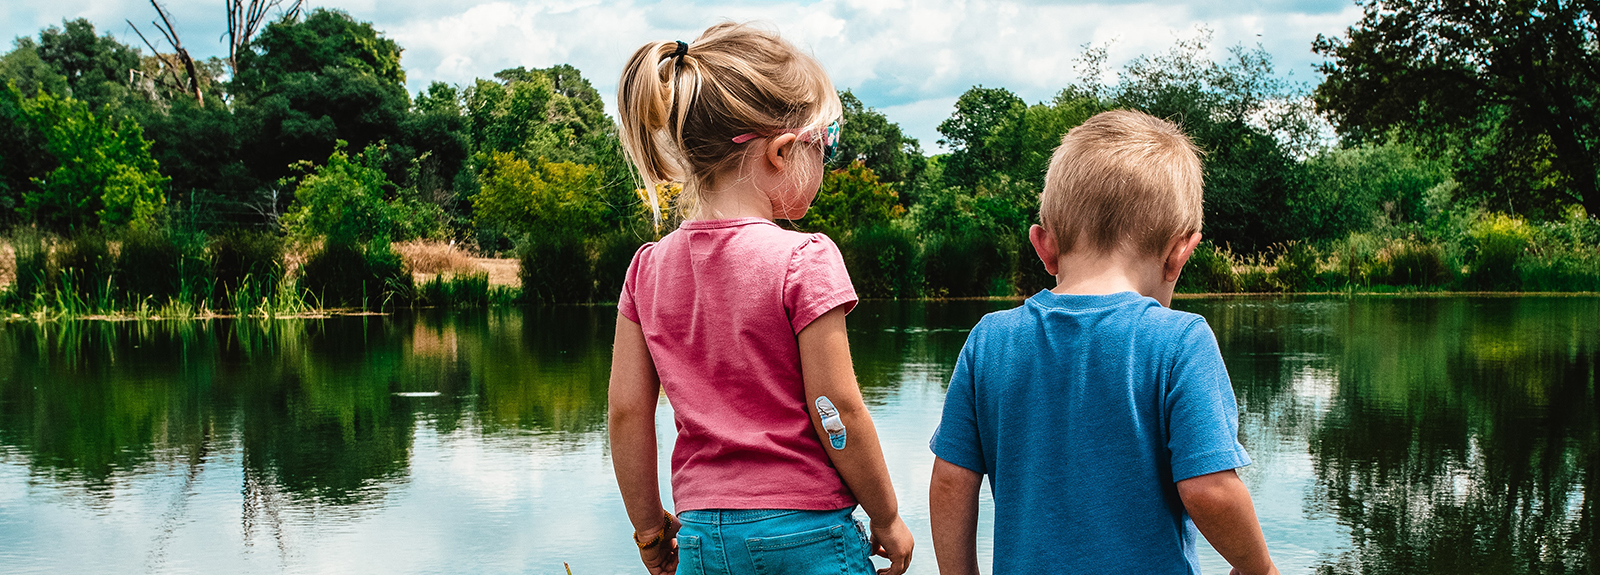 2 children near a lake